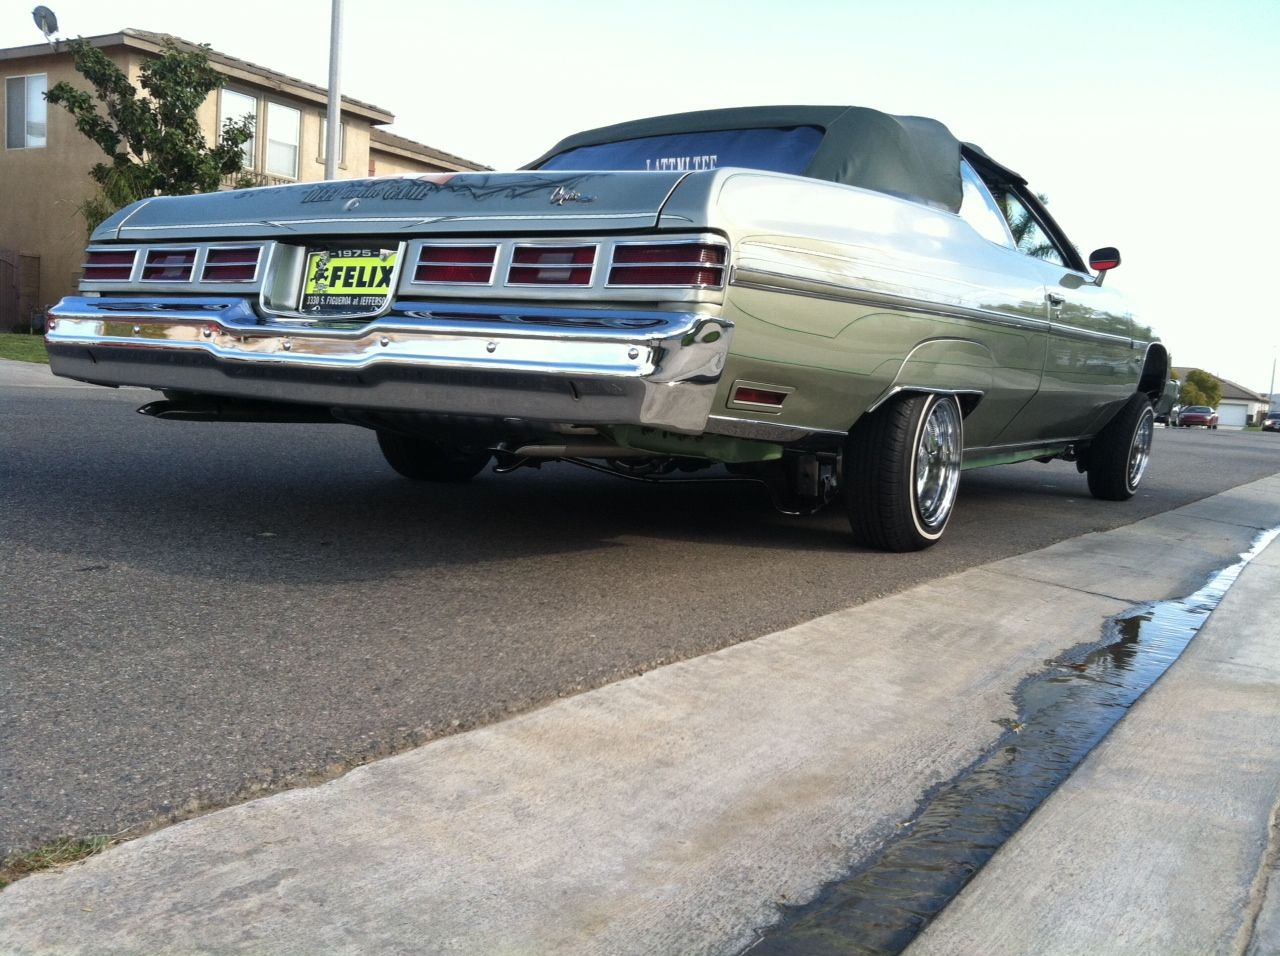 All Chevy 1971 chevrolet caprice for sale : My babes car. Just finished washing it. Glasshouse - 75 Chevy ...